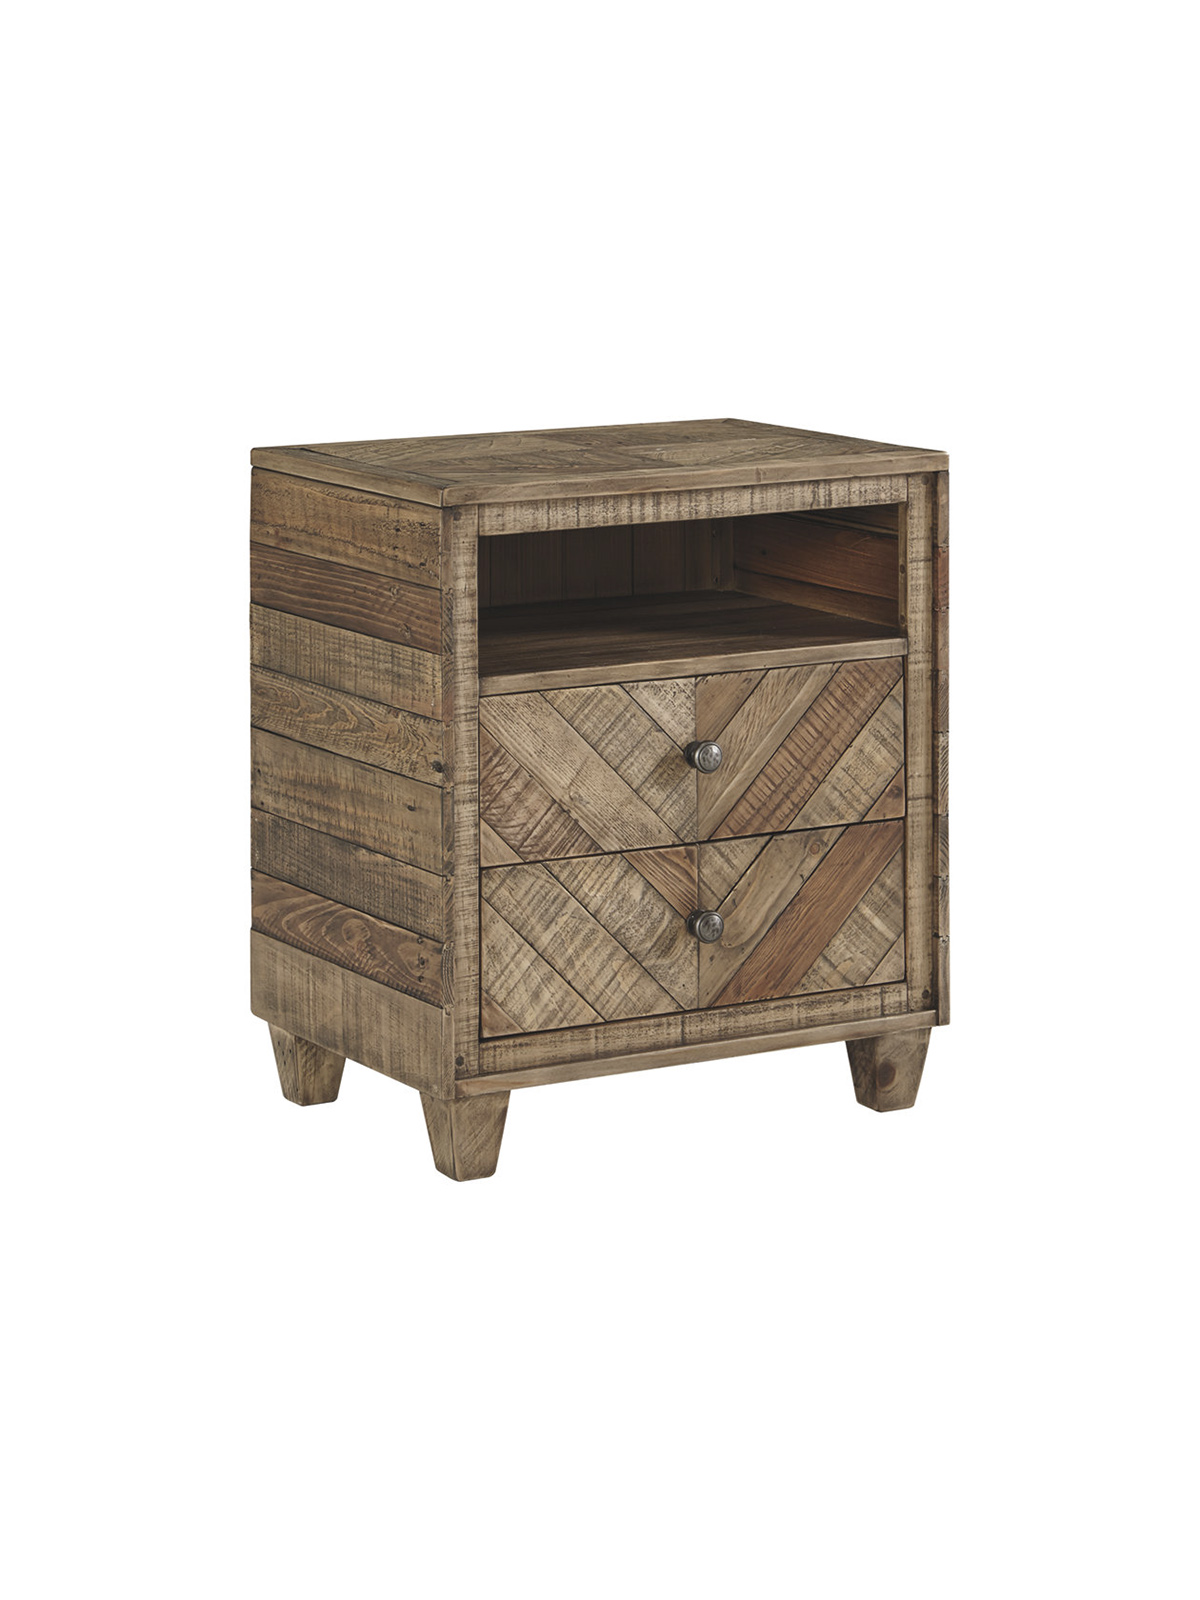 Luxe Decor for Less Reclaimed Wood Nightstand